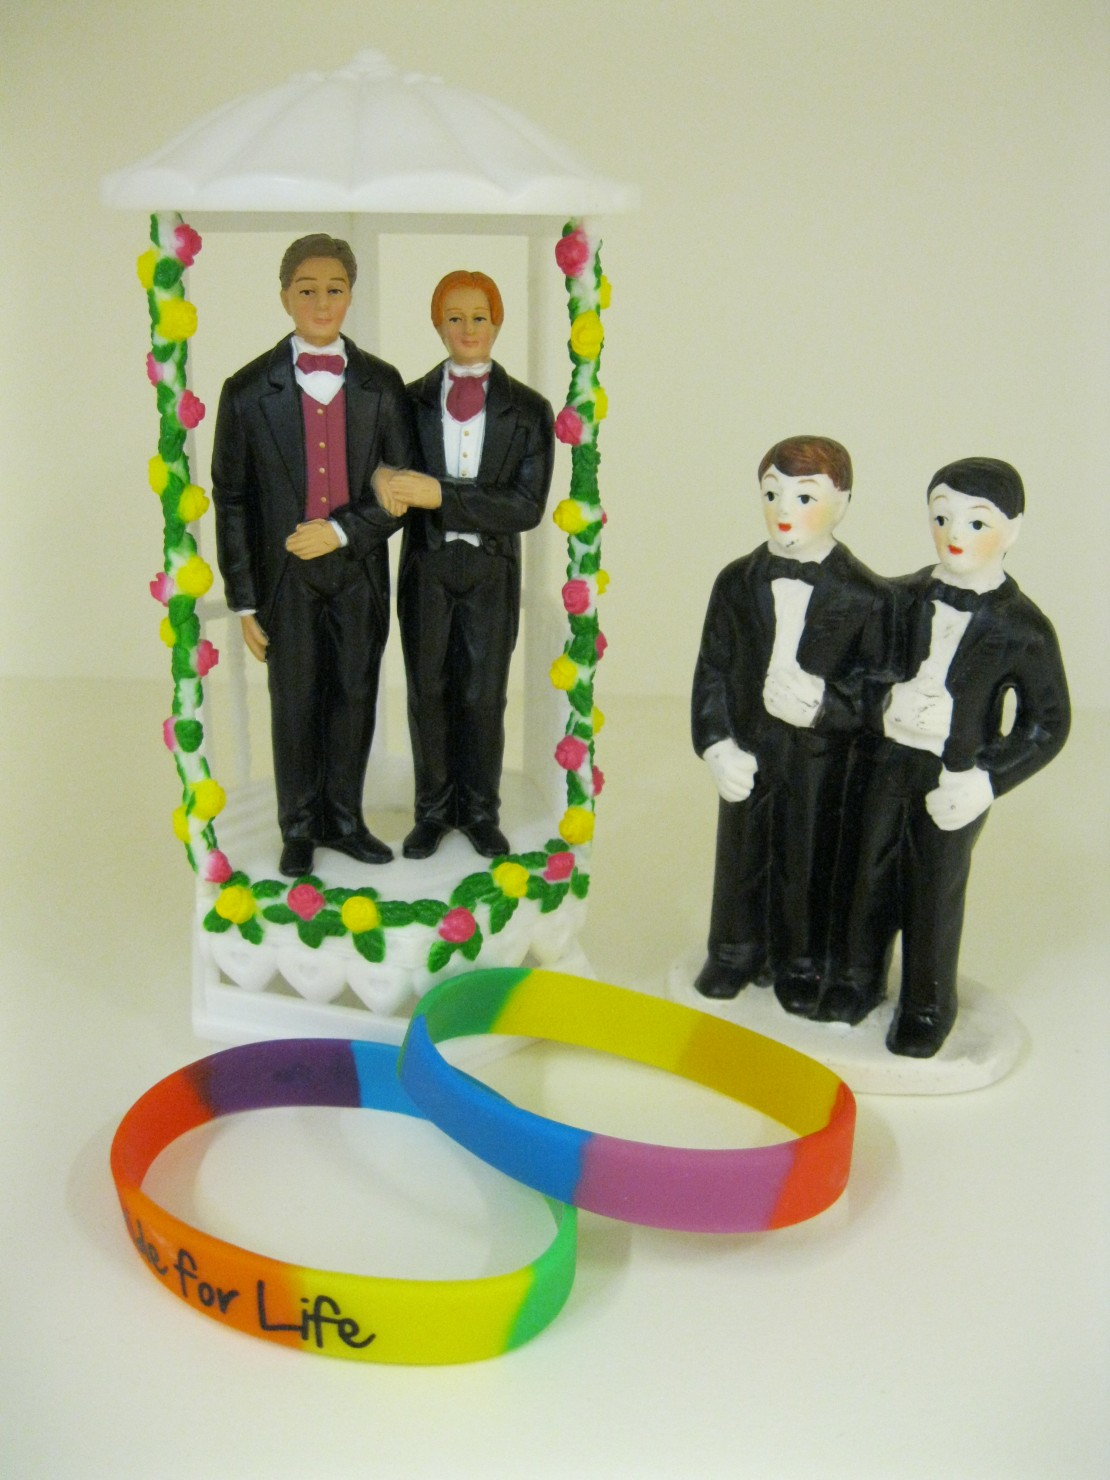 Groom and groom cake toppers from the Equal Love collection